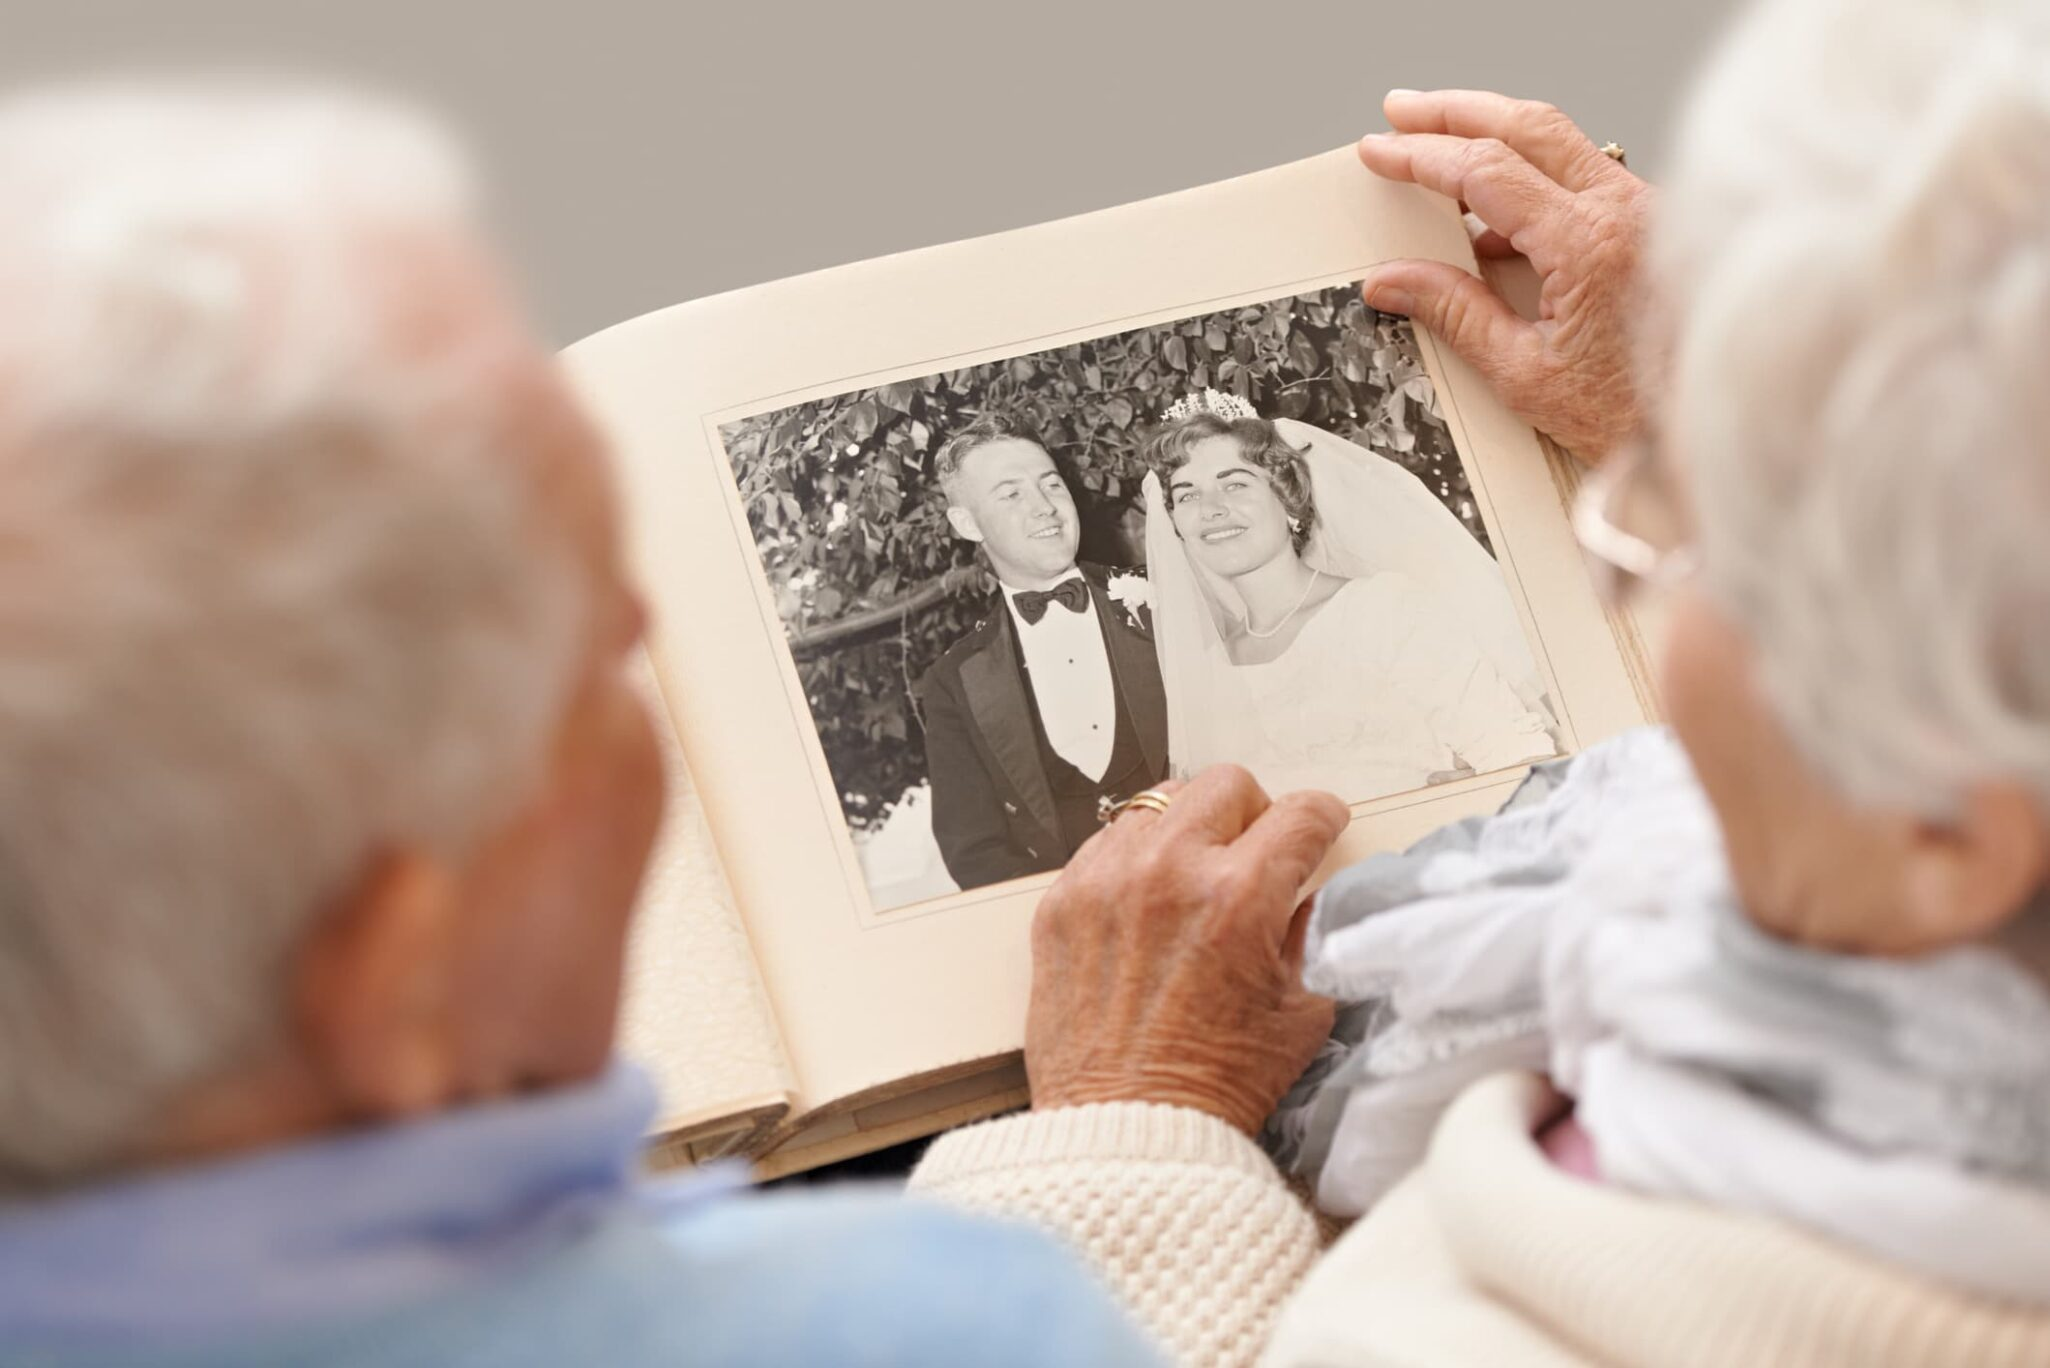 Older couple sitting on a couch together and looking at their wedding album.